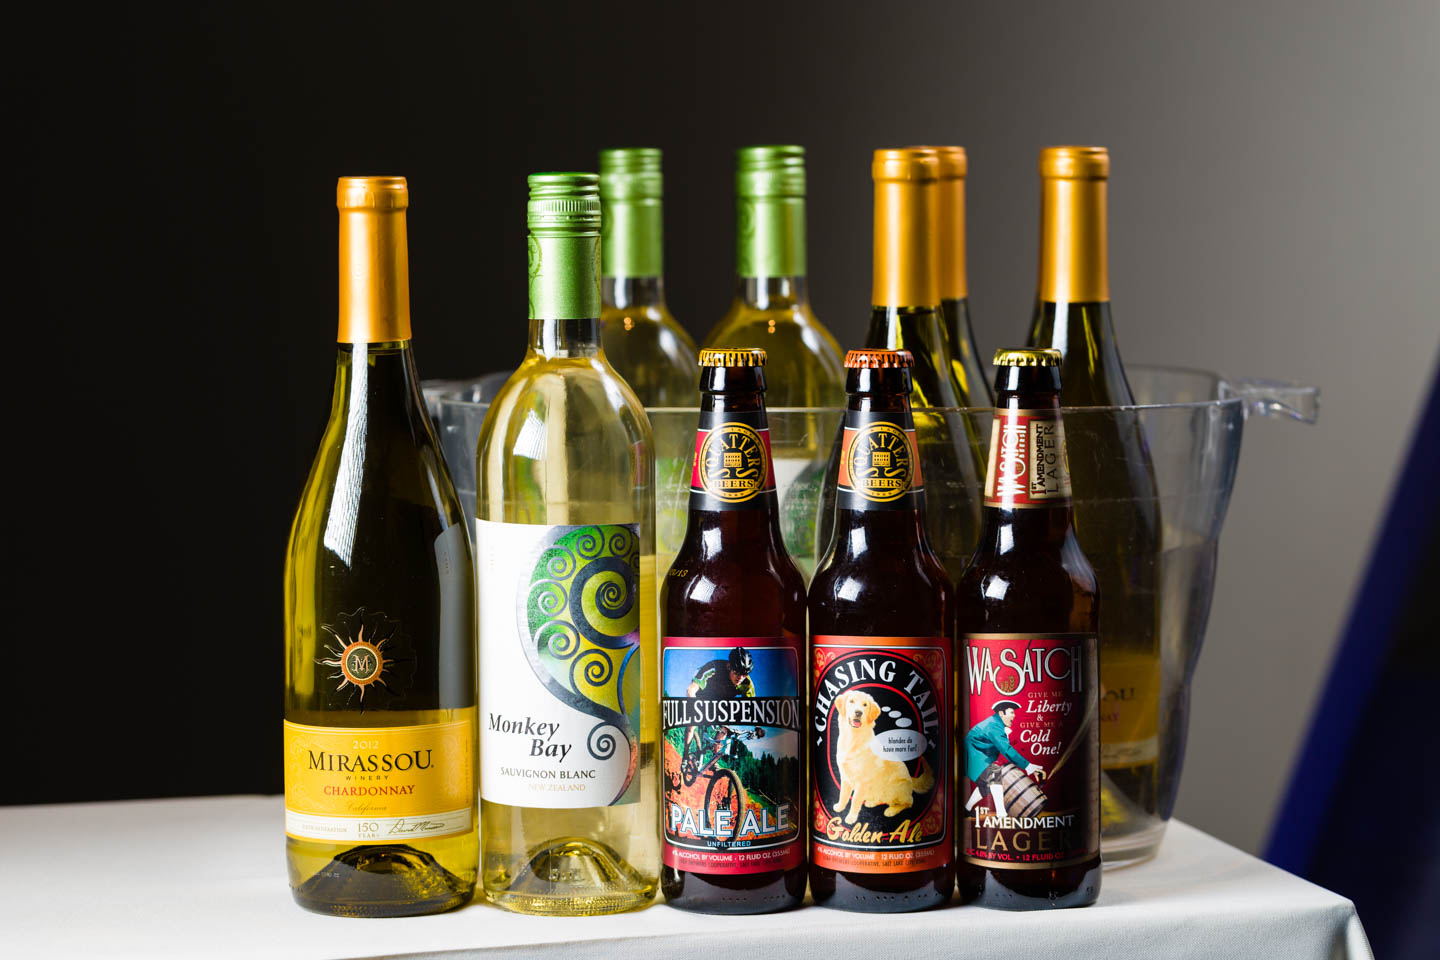 Locally brewed beers and wine